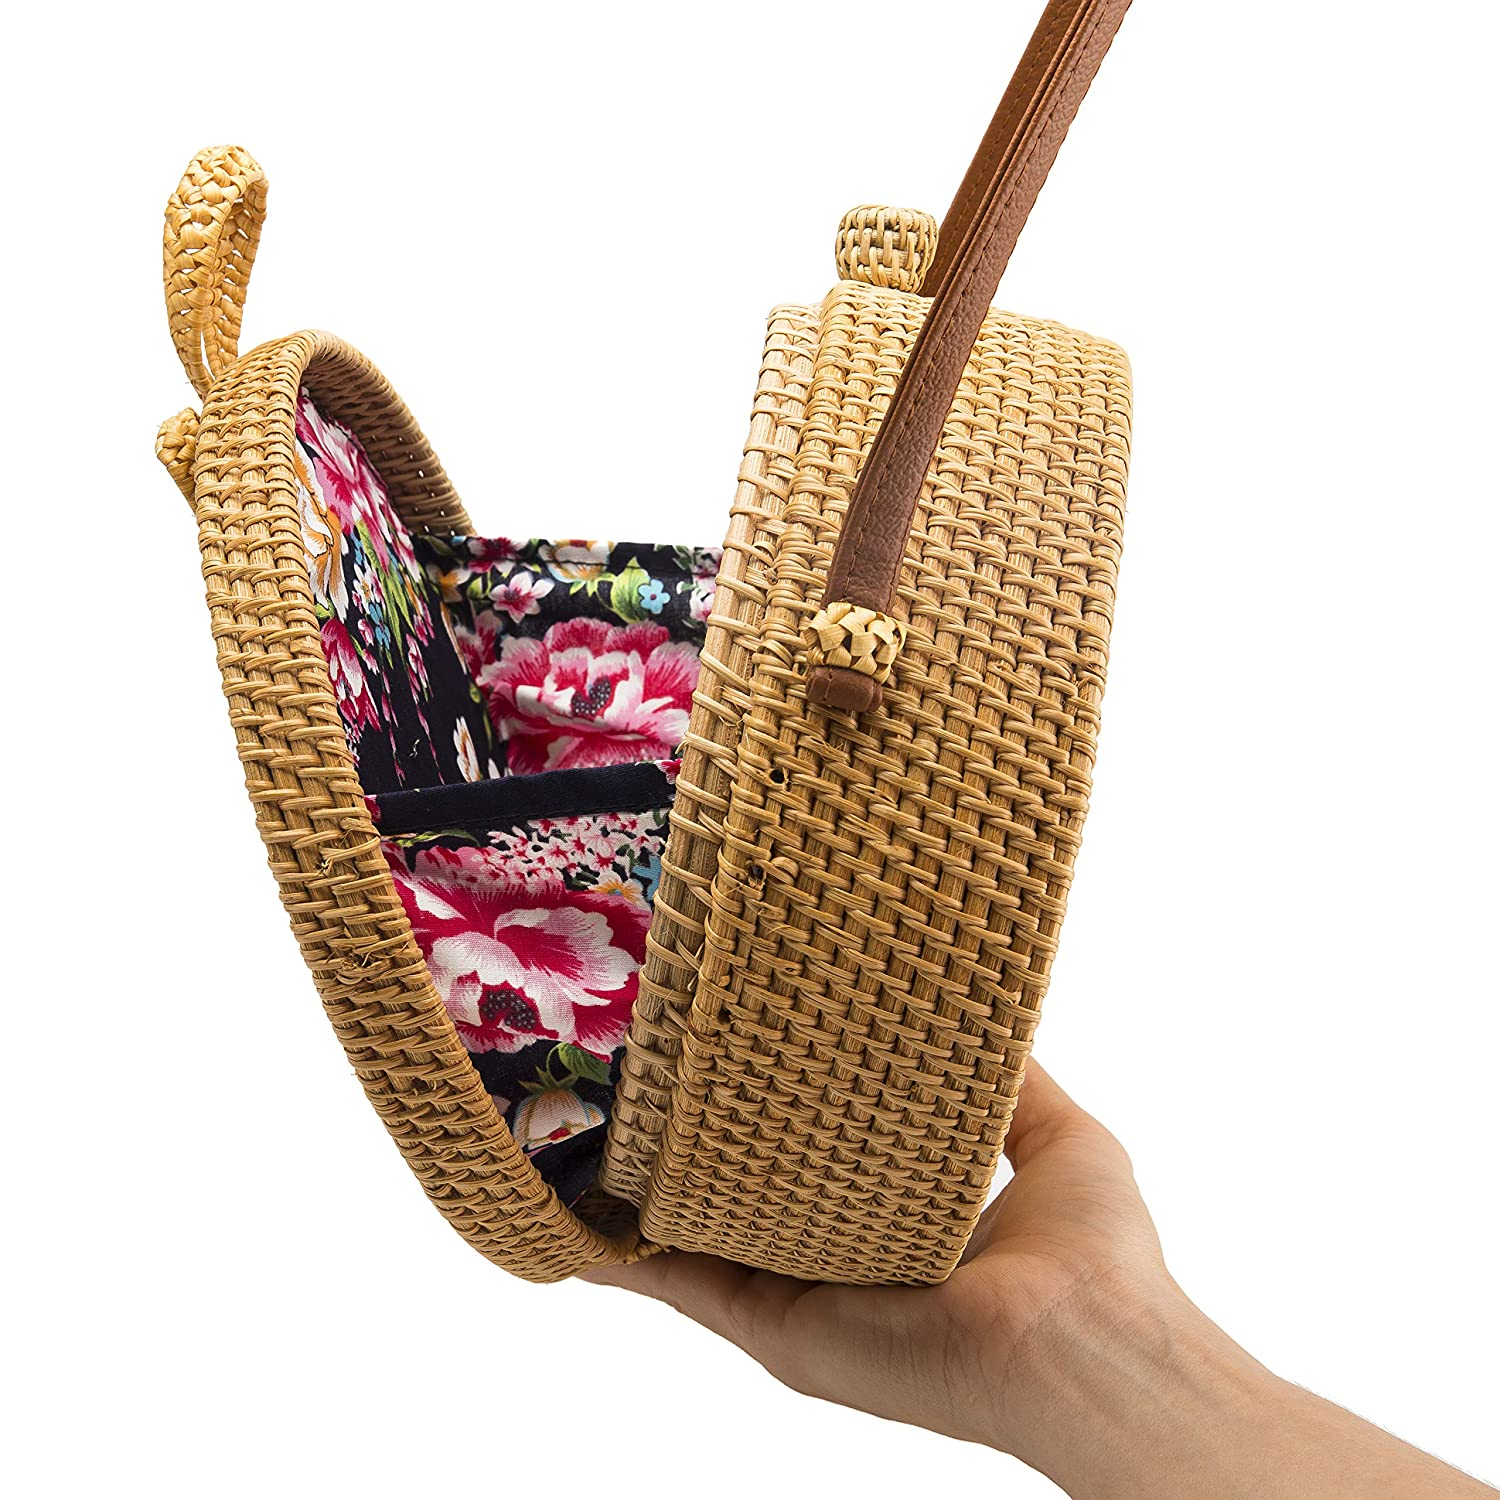 a007ab26237 Amazon.com  Handwoven Round Rattan Bag Shoulder Leather Straps Natural Chic  Hand NATURALNEO  Clothing